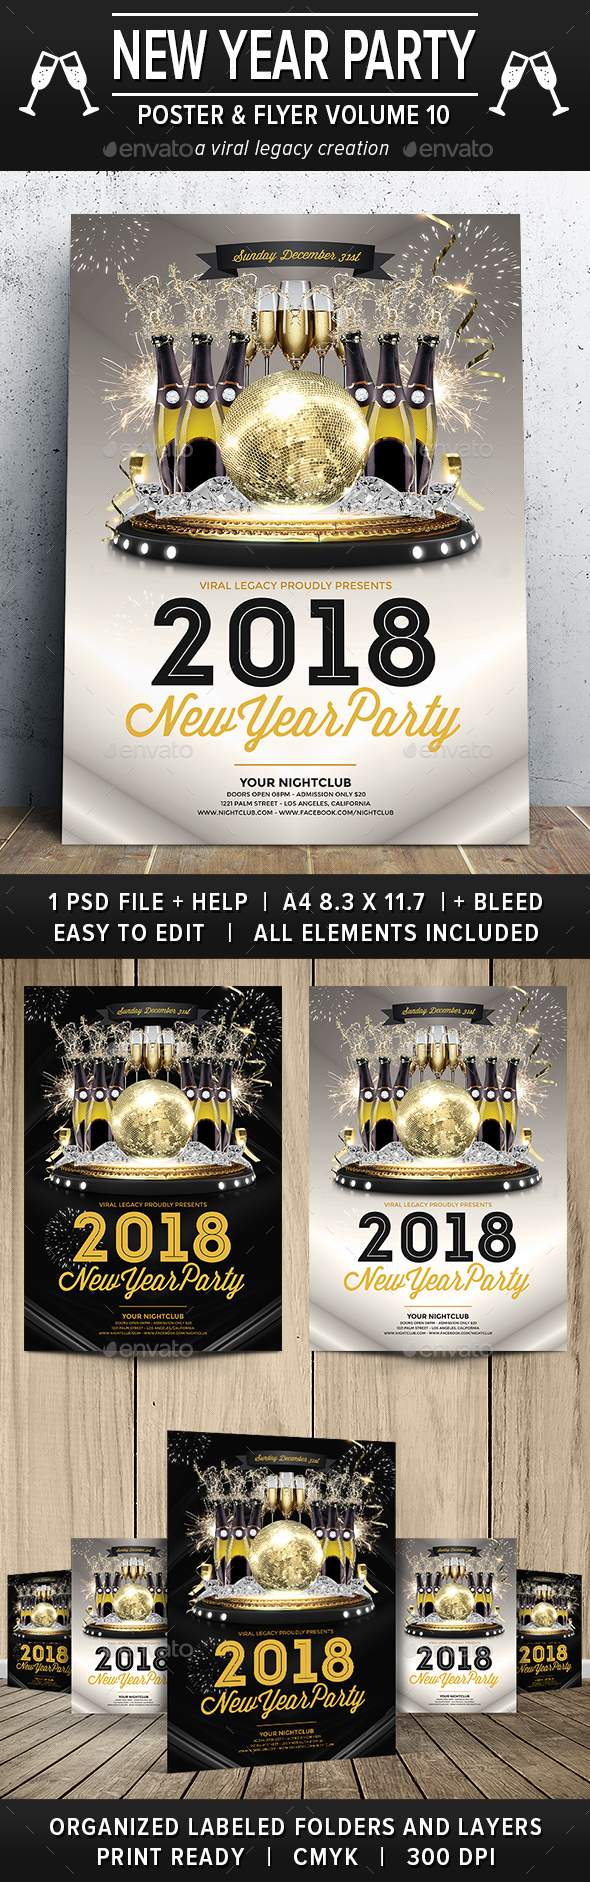 New Year Party Poster / Flyer V10 - Flyers Print Templates